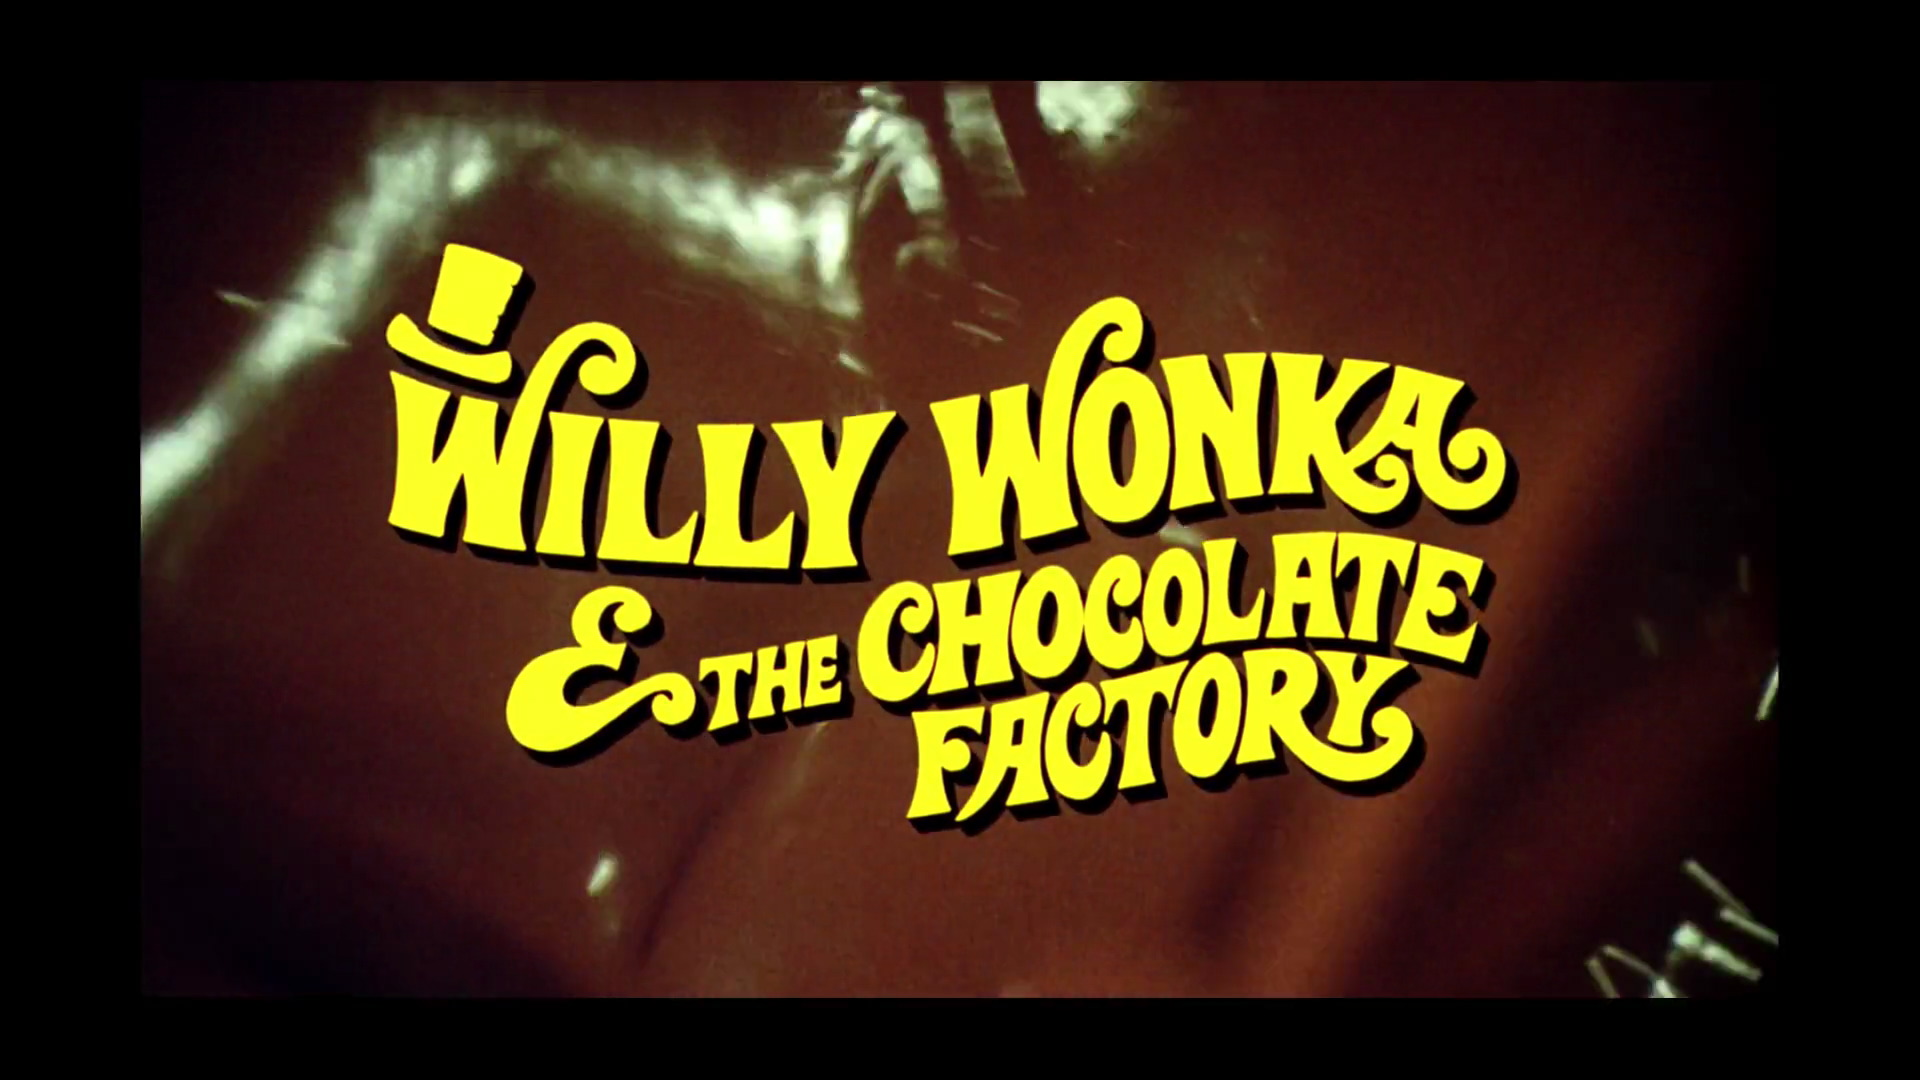 Willy Wonka & the Chocolate Factory (1971) - Movie Screencaps.com